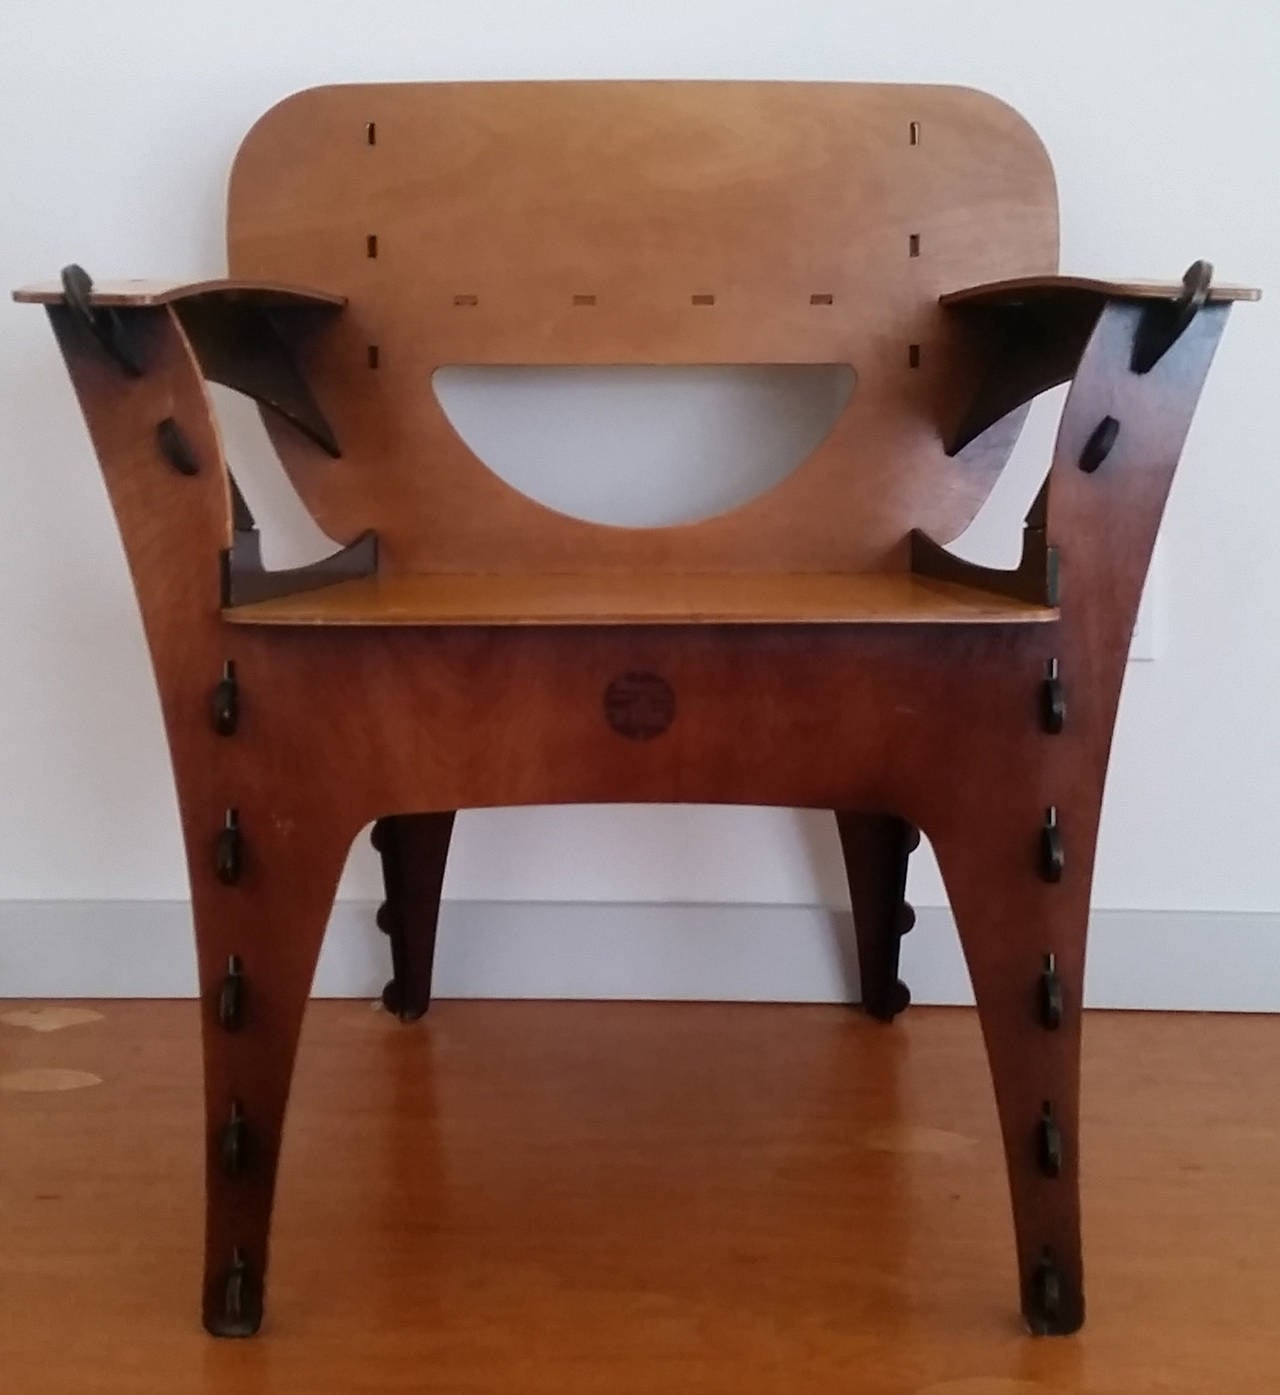 chair stool crossword old school lawn chairs david kawecki modern puzzle for sale at 1stdibs